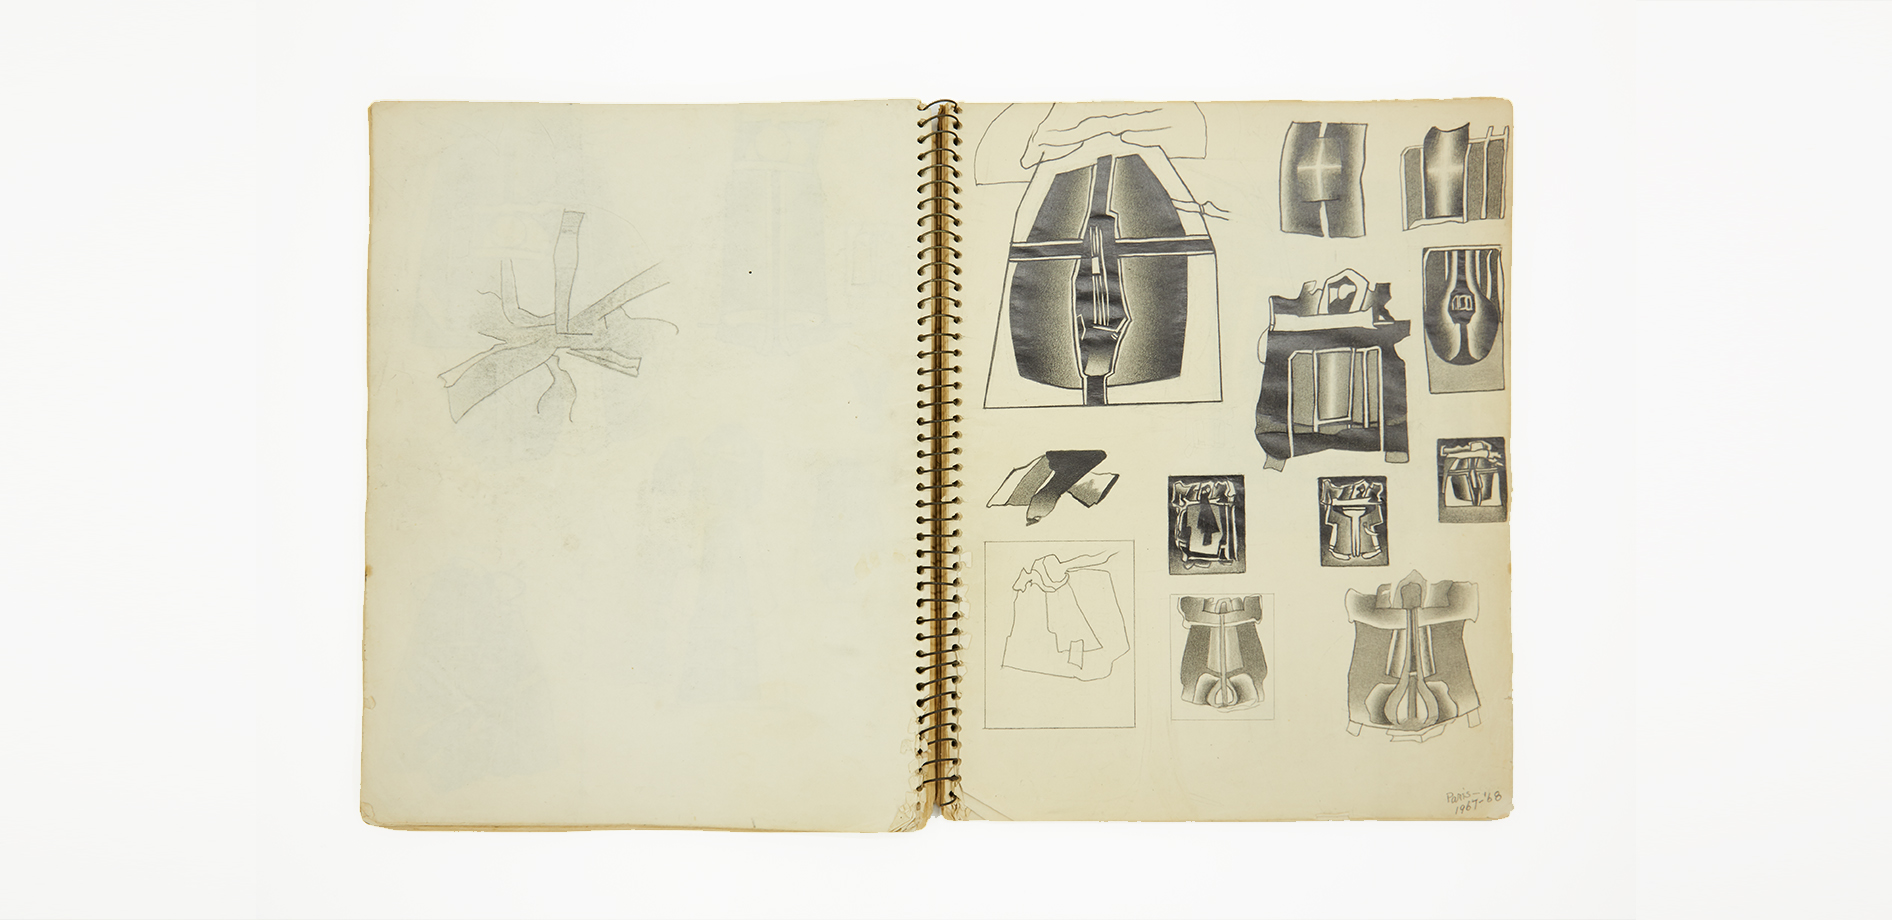 View of a page in Deborah Remington's sketchbook. Multiple small sketches of shield like shapes